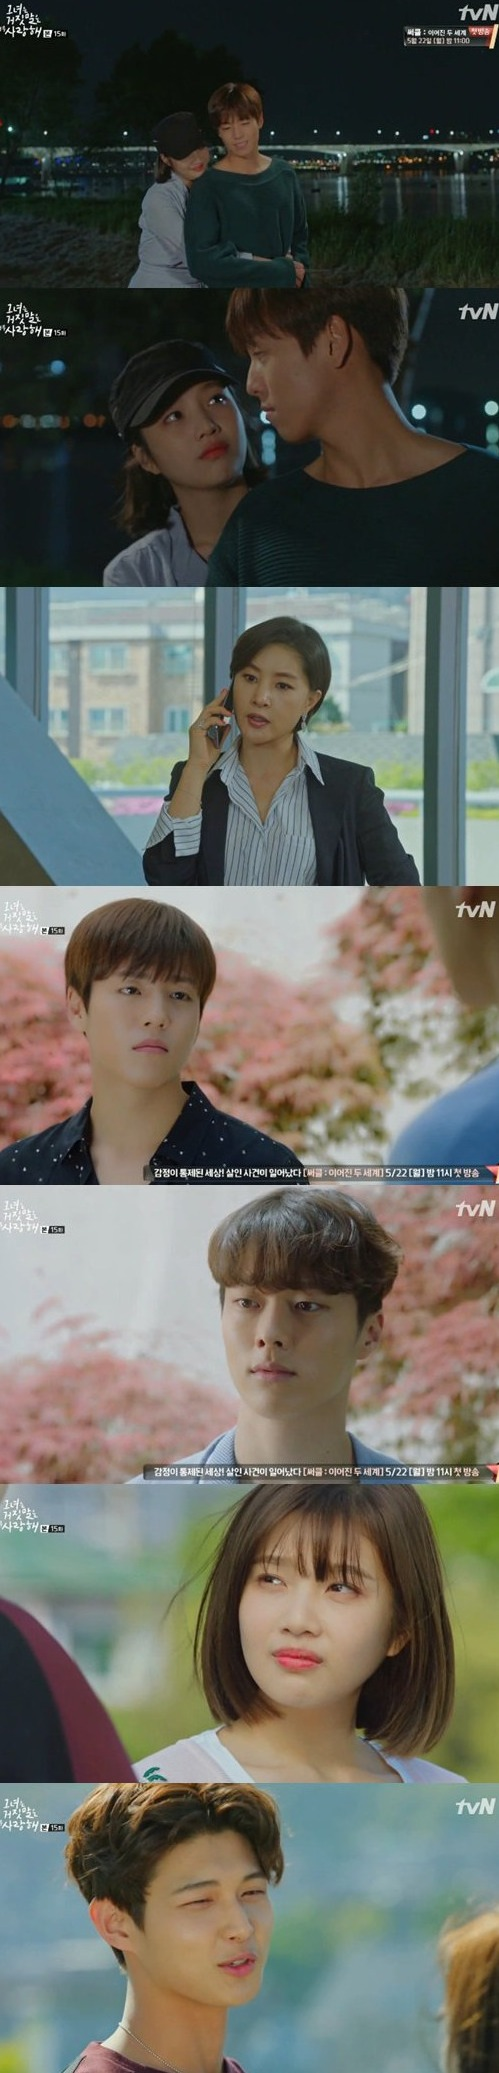 [Spoiler] Added episode 15 captures for the Korean drama 'The Liar and His Lover'